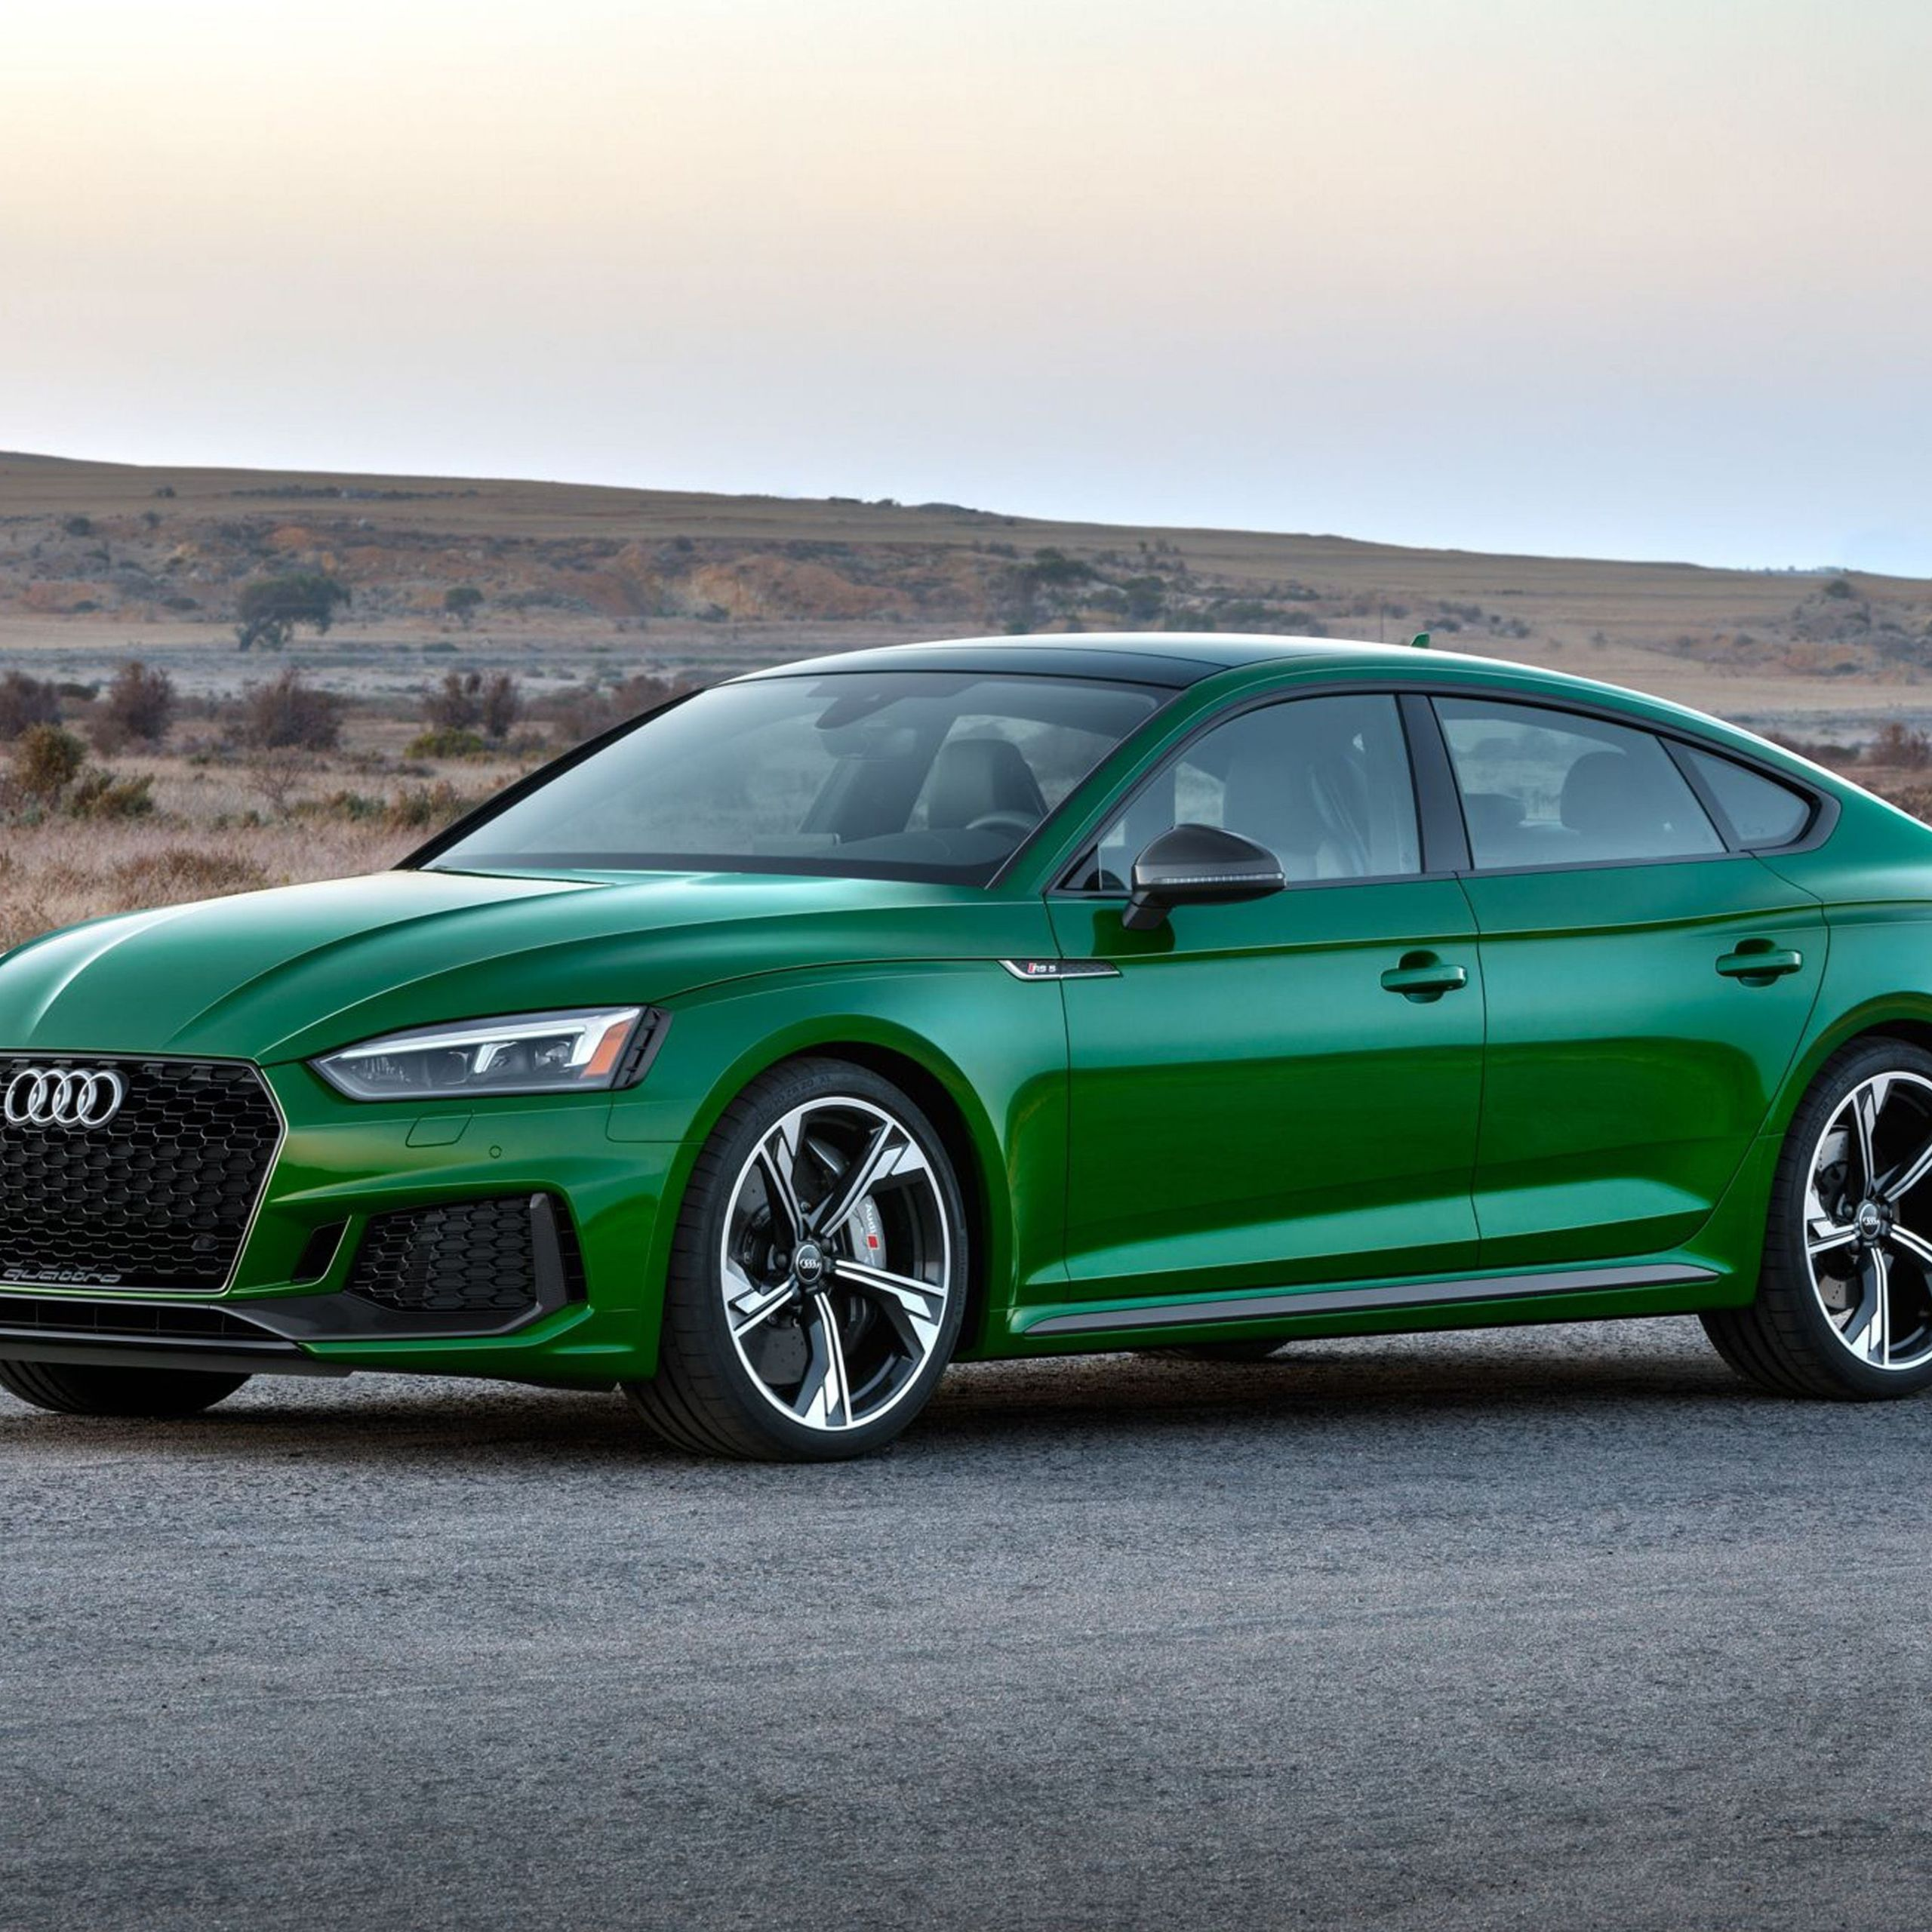 Rs5 for Sale Inspirational 2019 Audi Rs5 Sportback Review Pricing and Specs